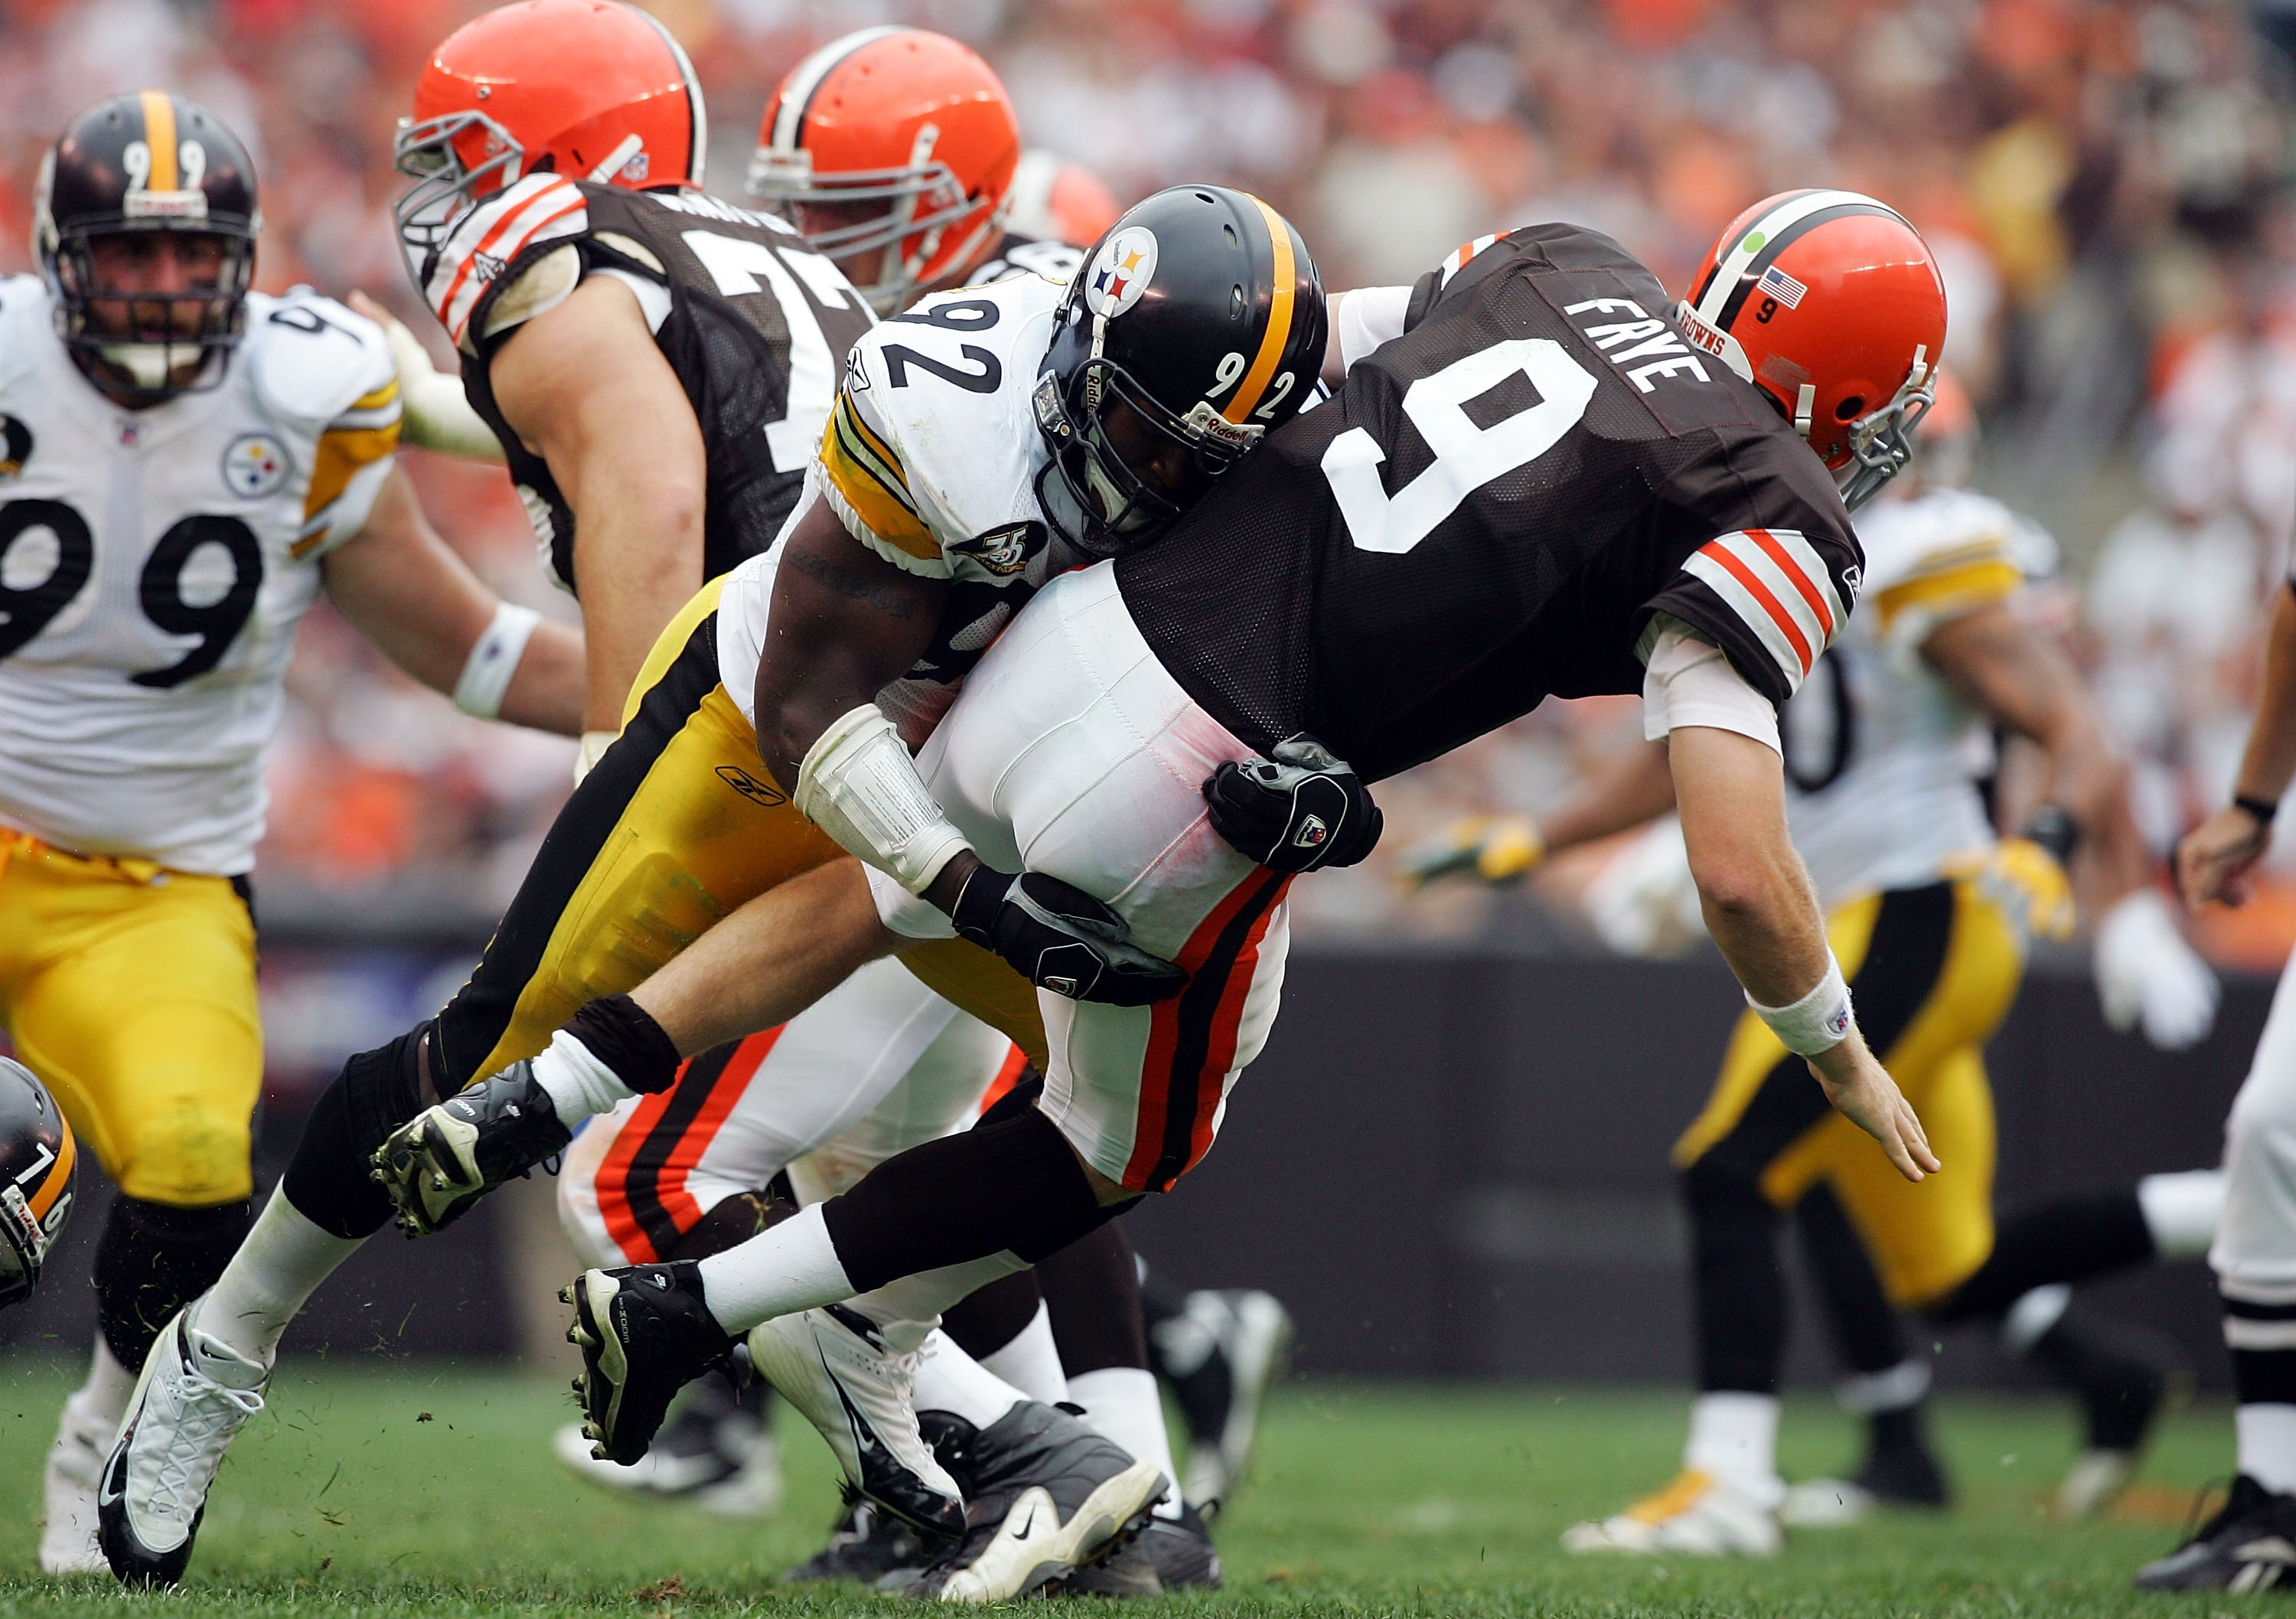 CLEVELAND - SEPTEMBER 9:  Charlie Frye #9 of the Cleveland Browns is sacked by James Harrison #92 of the Pittsburgh Steelers during their season opening game at Cleveland Browns Stadium September 9, 2007 in Cleveland, Ohio.  (Photo by Jim McIsaac/Getty Im